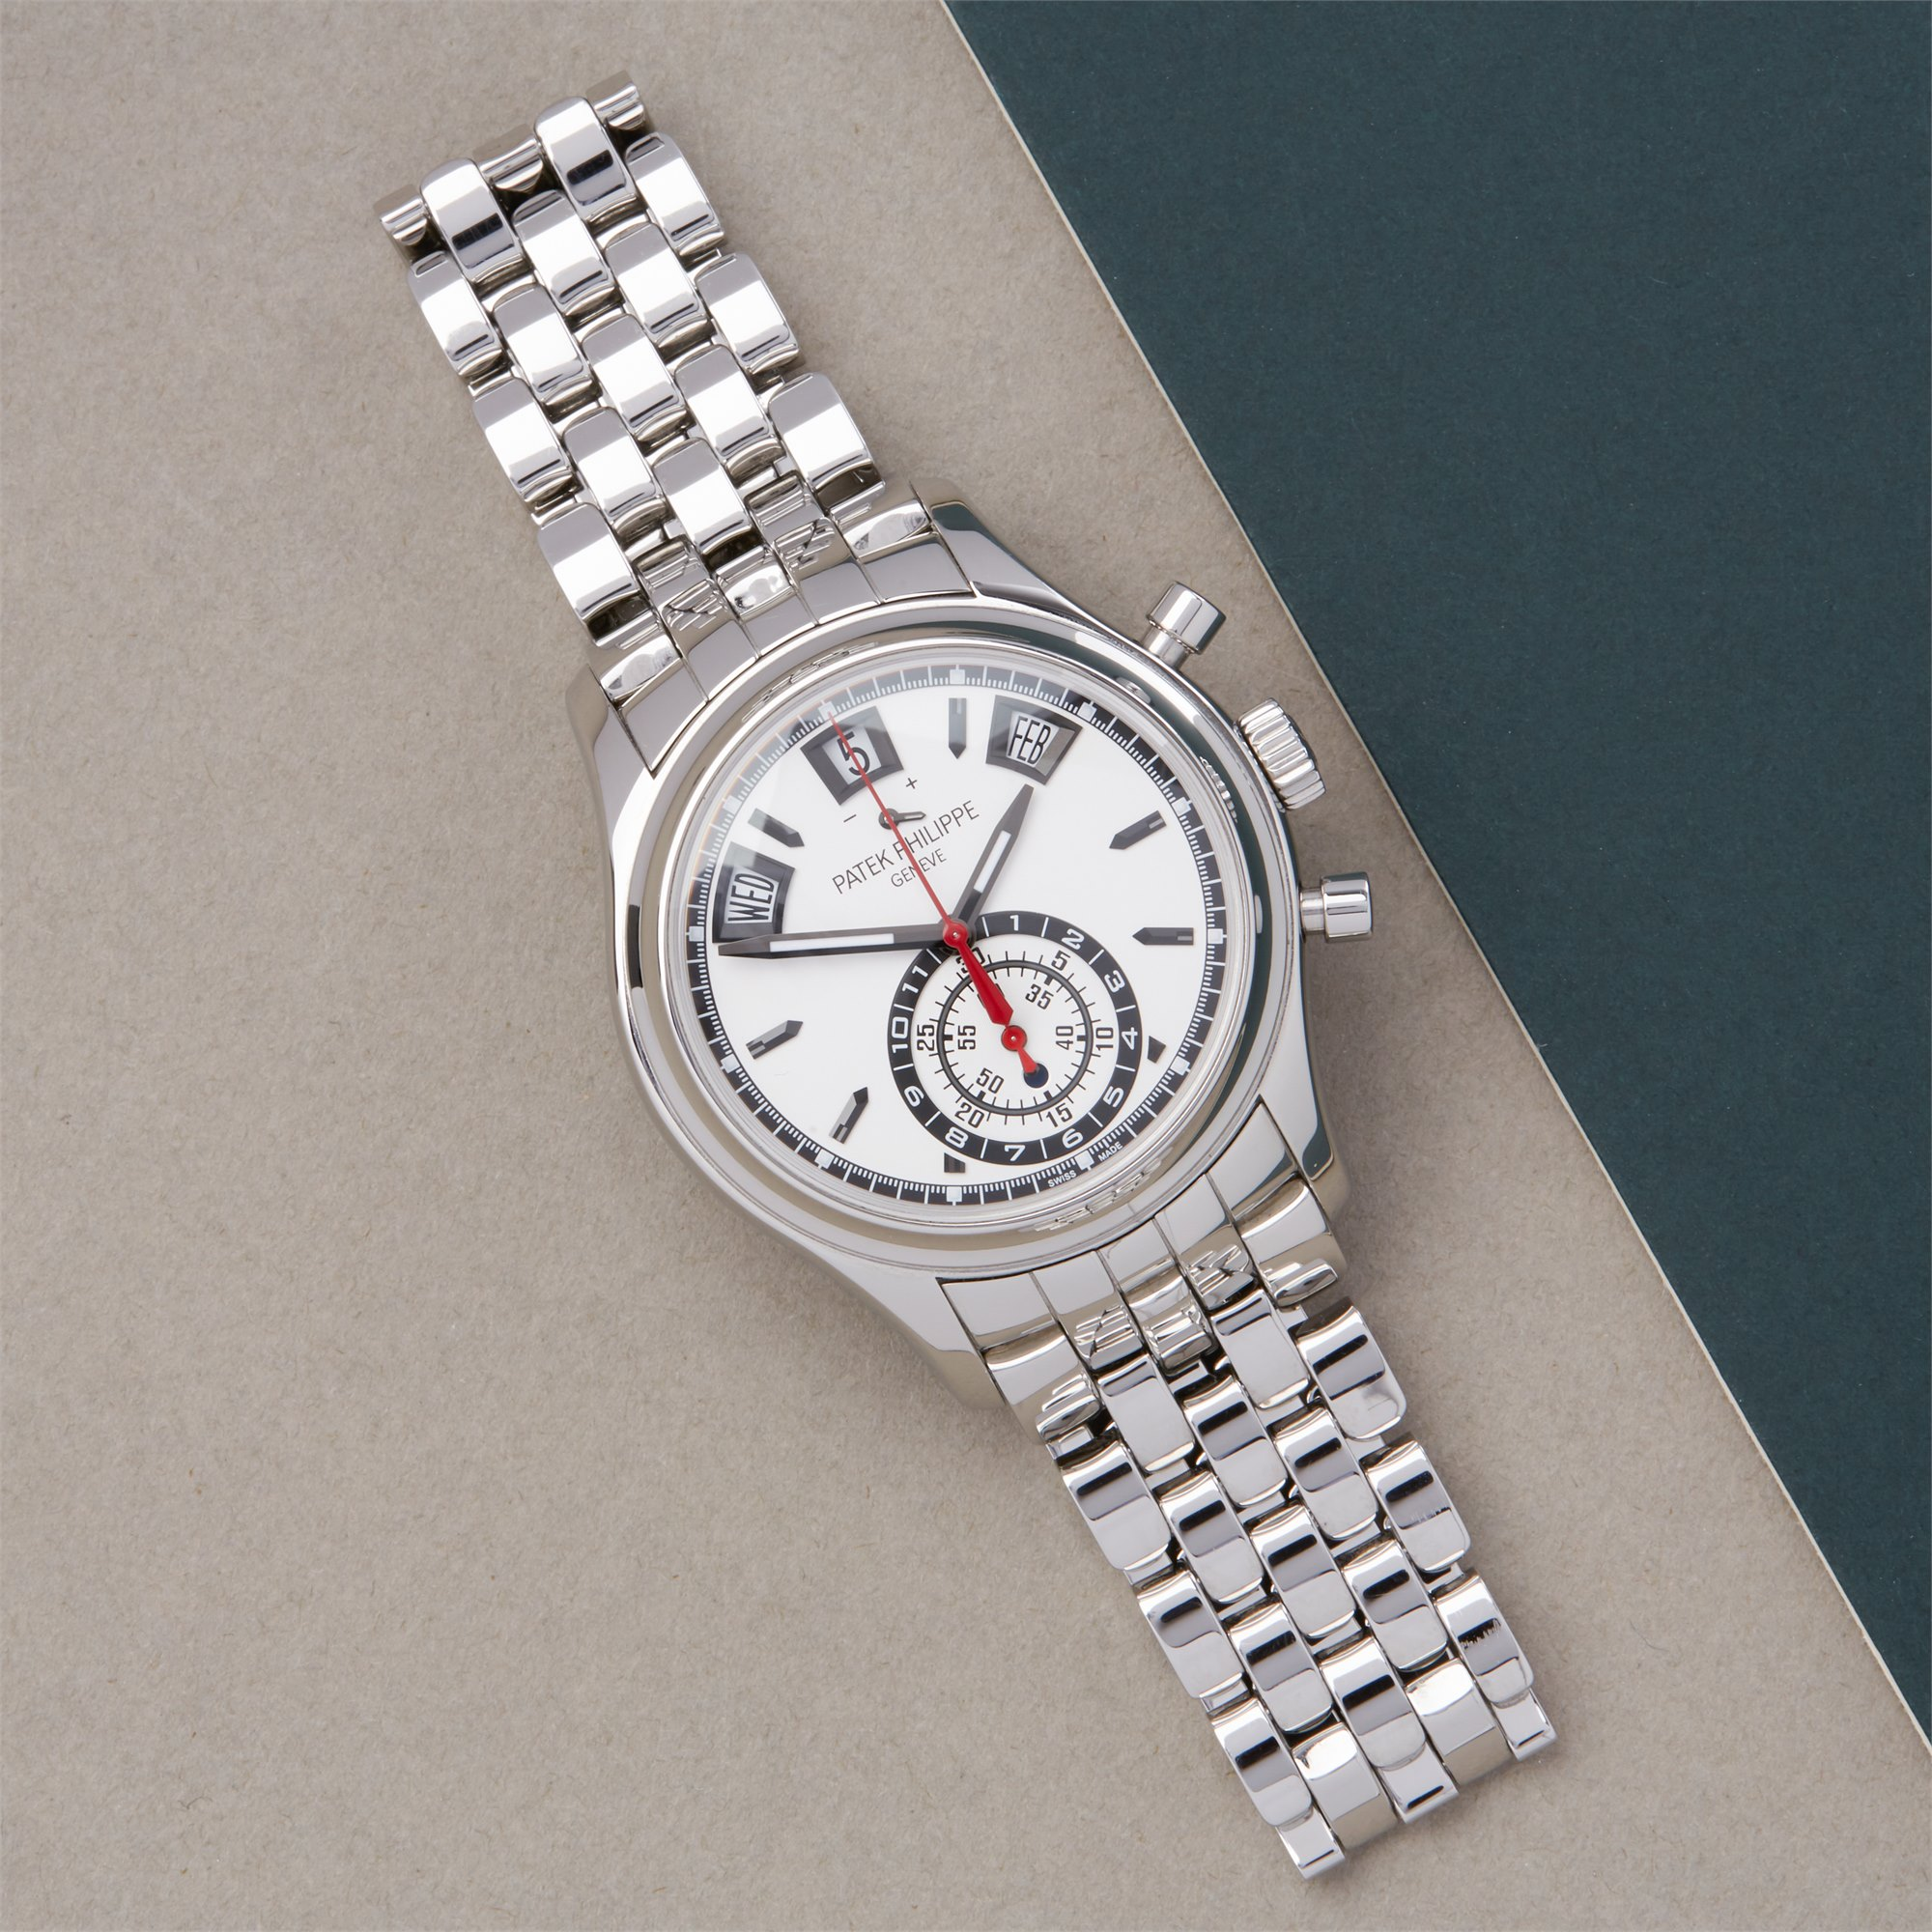 Patek Philippe Complications Annual Calendar Chronograph Stainless Steel - 5960/1A-001 Stainless Steel 5960/1A-001